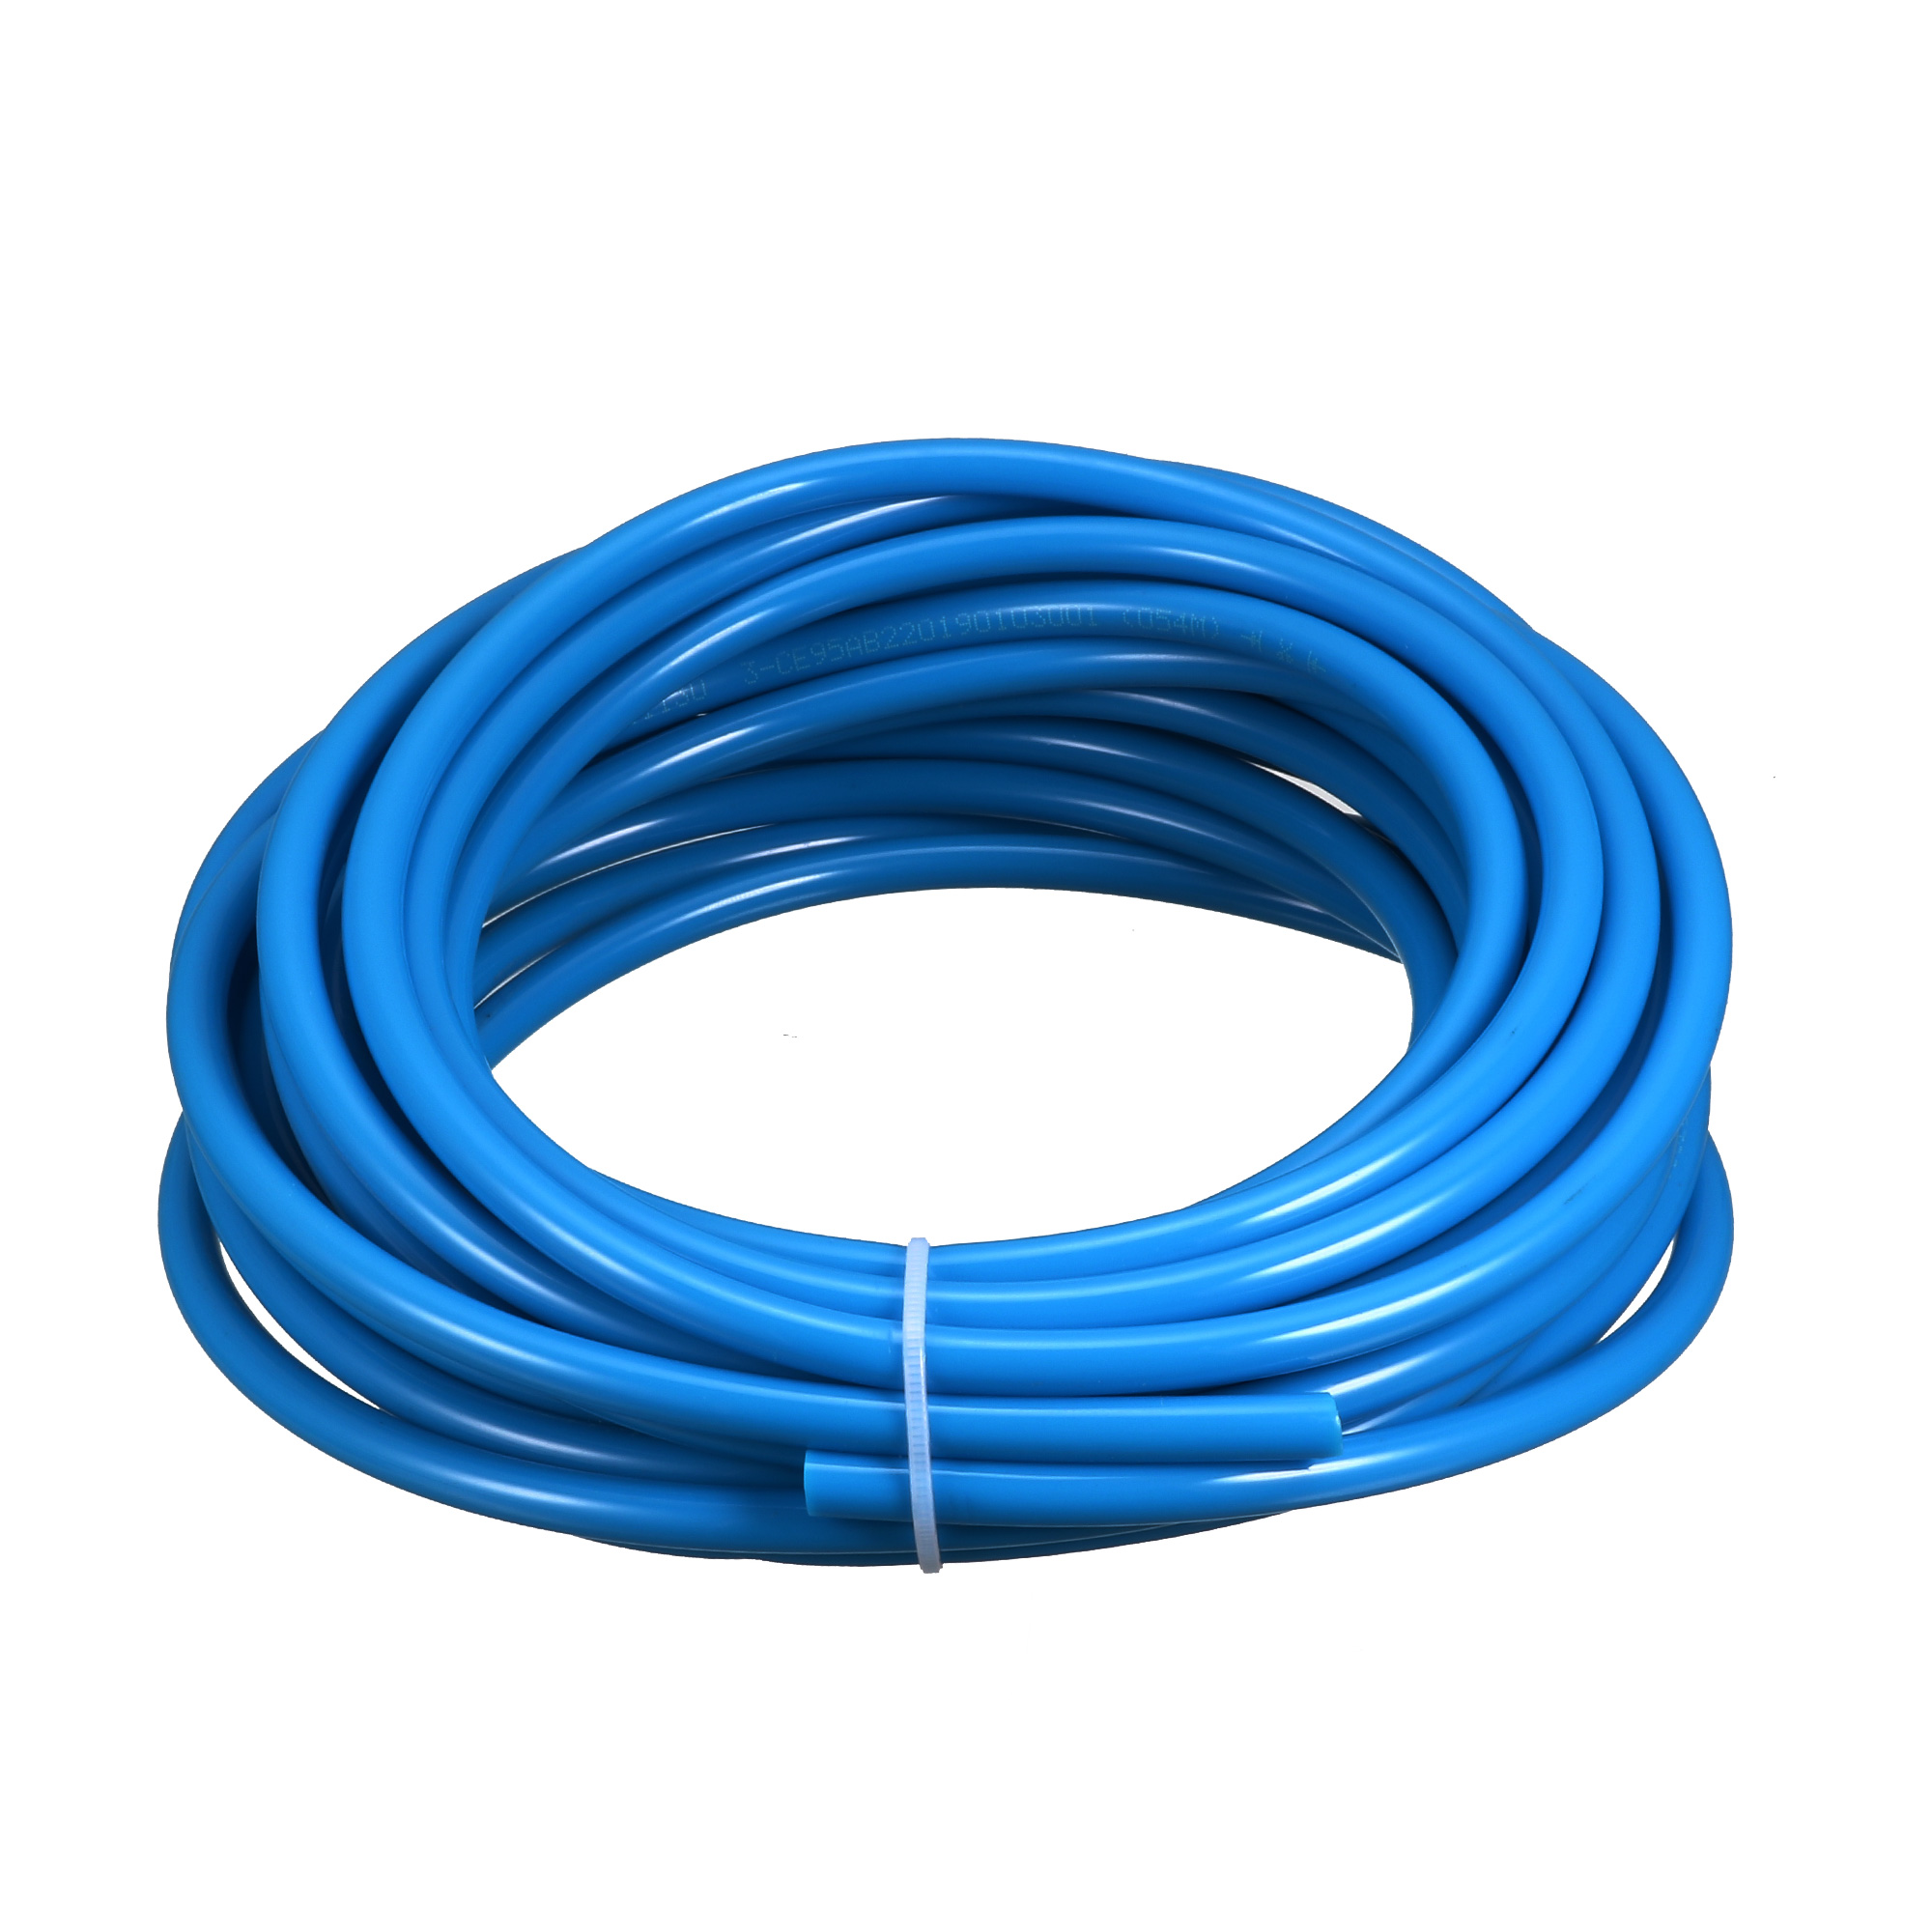 6mm x 4mm Pneumatic Air Compressor Tubing PU Hose Tube Pipe 6.8 meter Blue